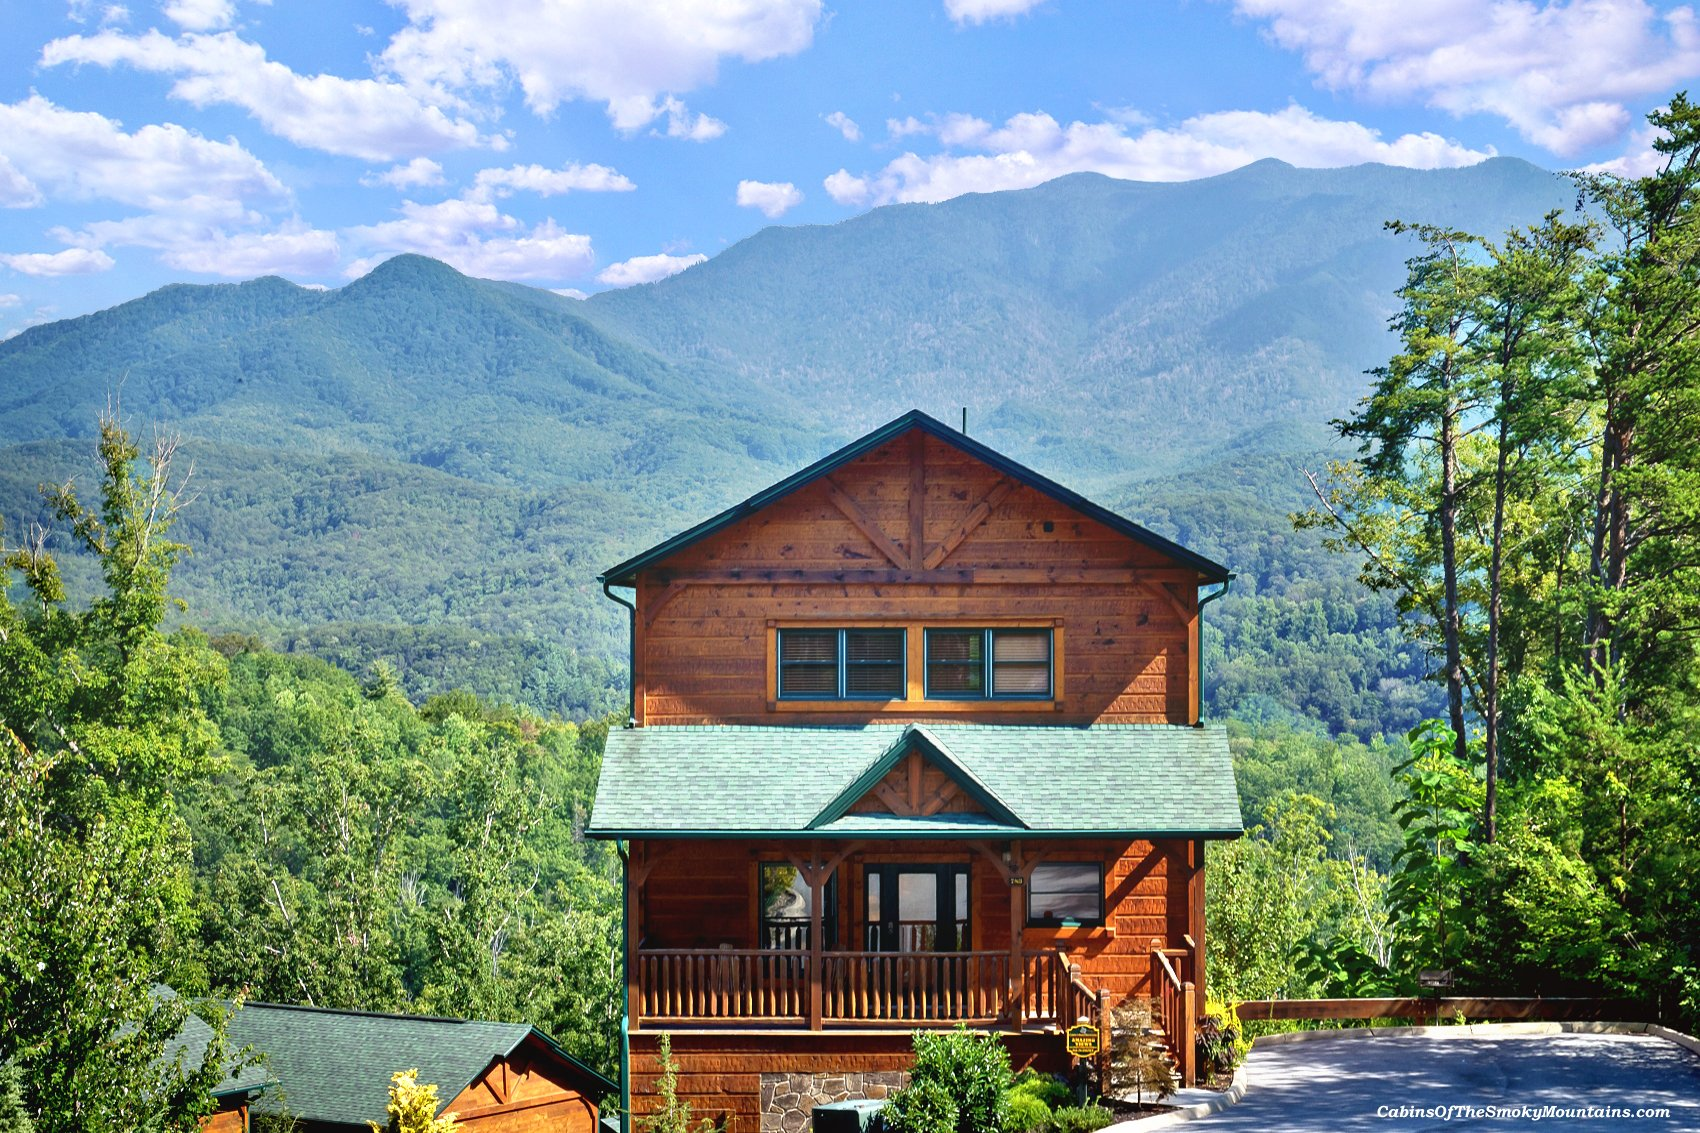 Passion peak 1 bedroom cabin gatlinburg falls Best mountain view cabins in gatlinburg tn